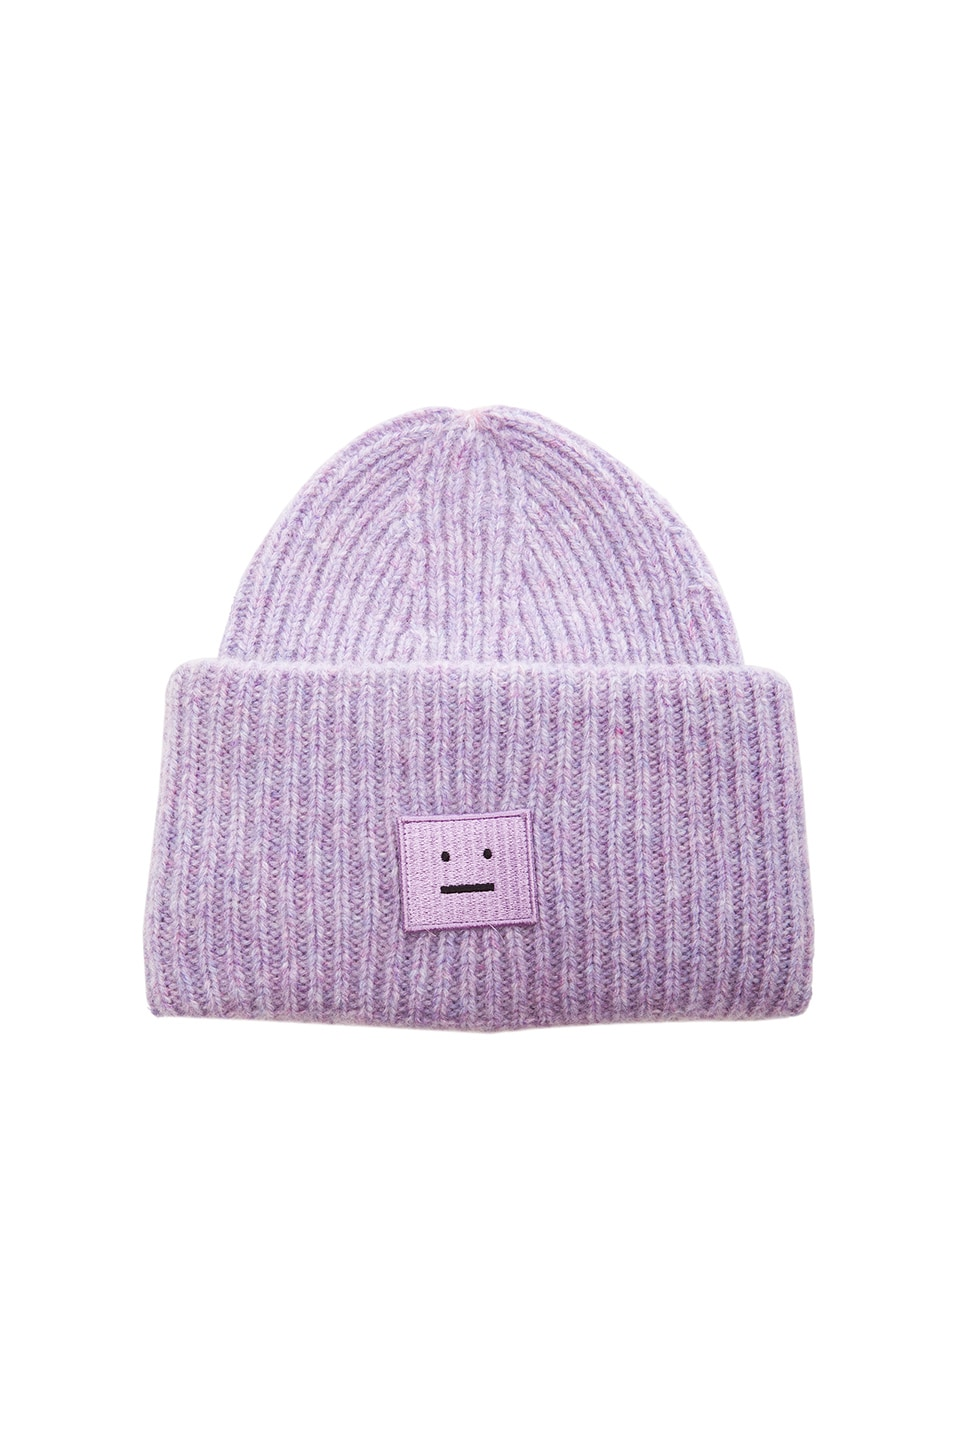 Image 1 of Acne Studios Pansy Hat in Dusty Lilac & Lavender